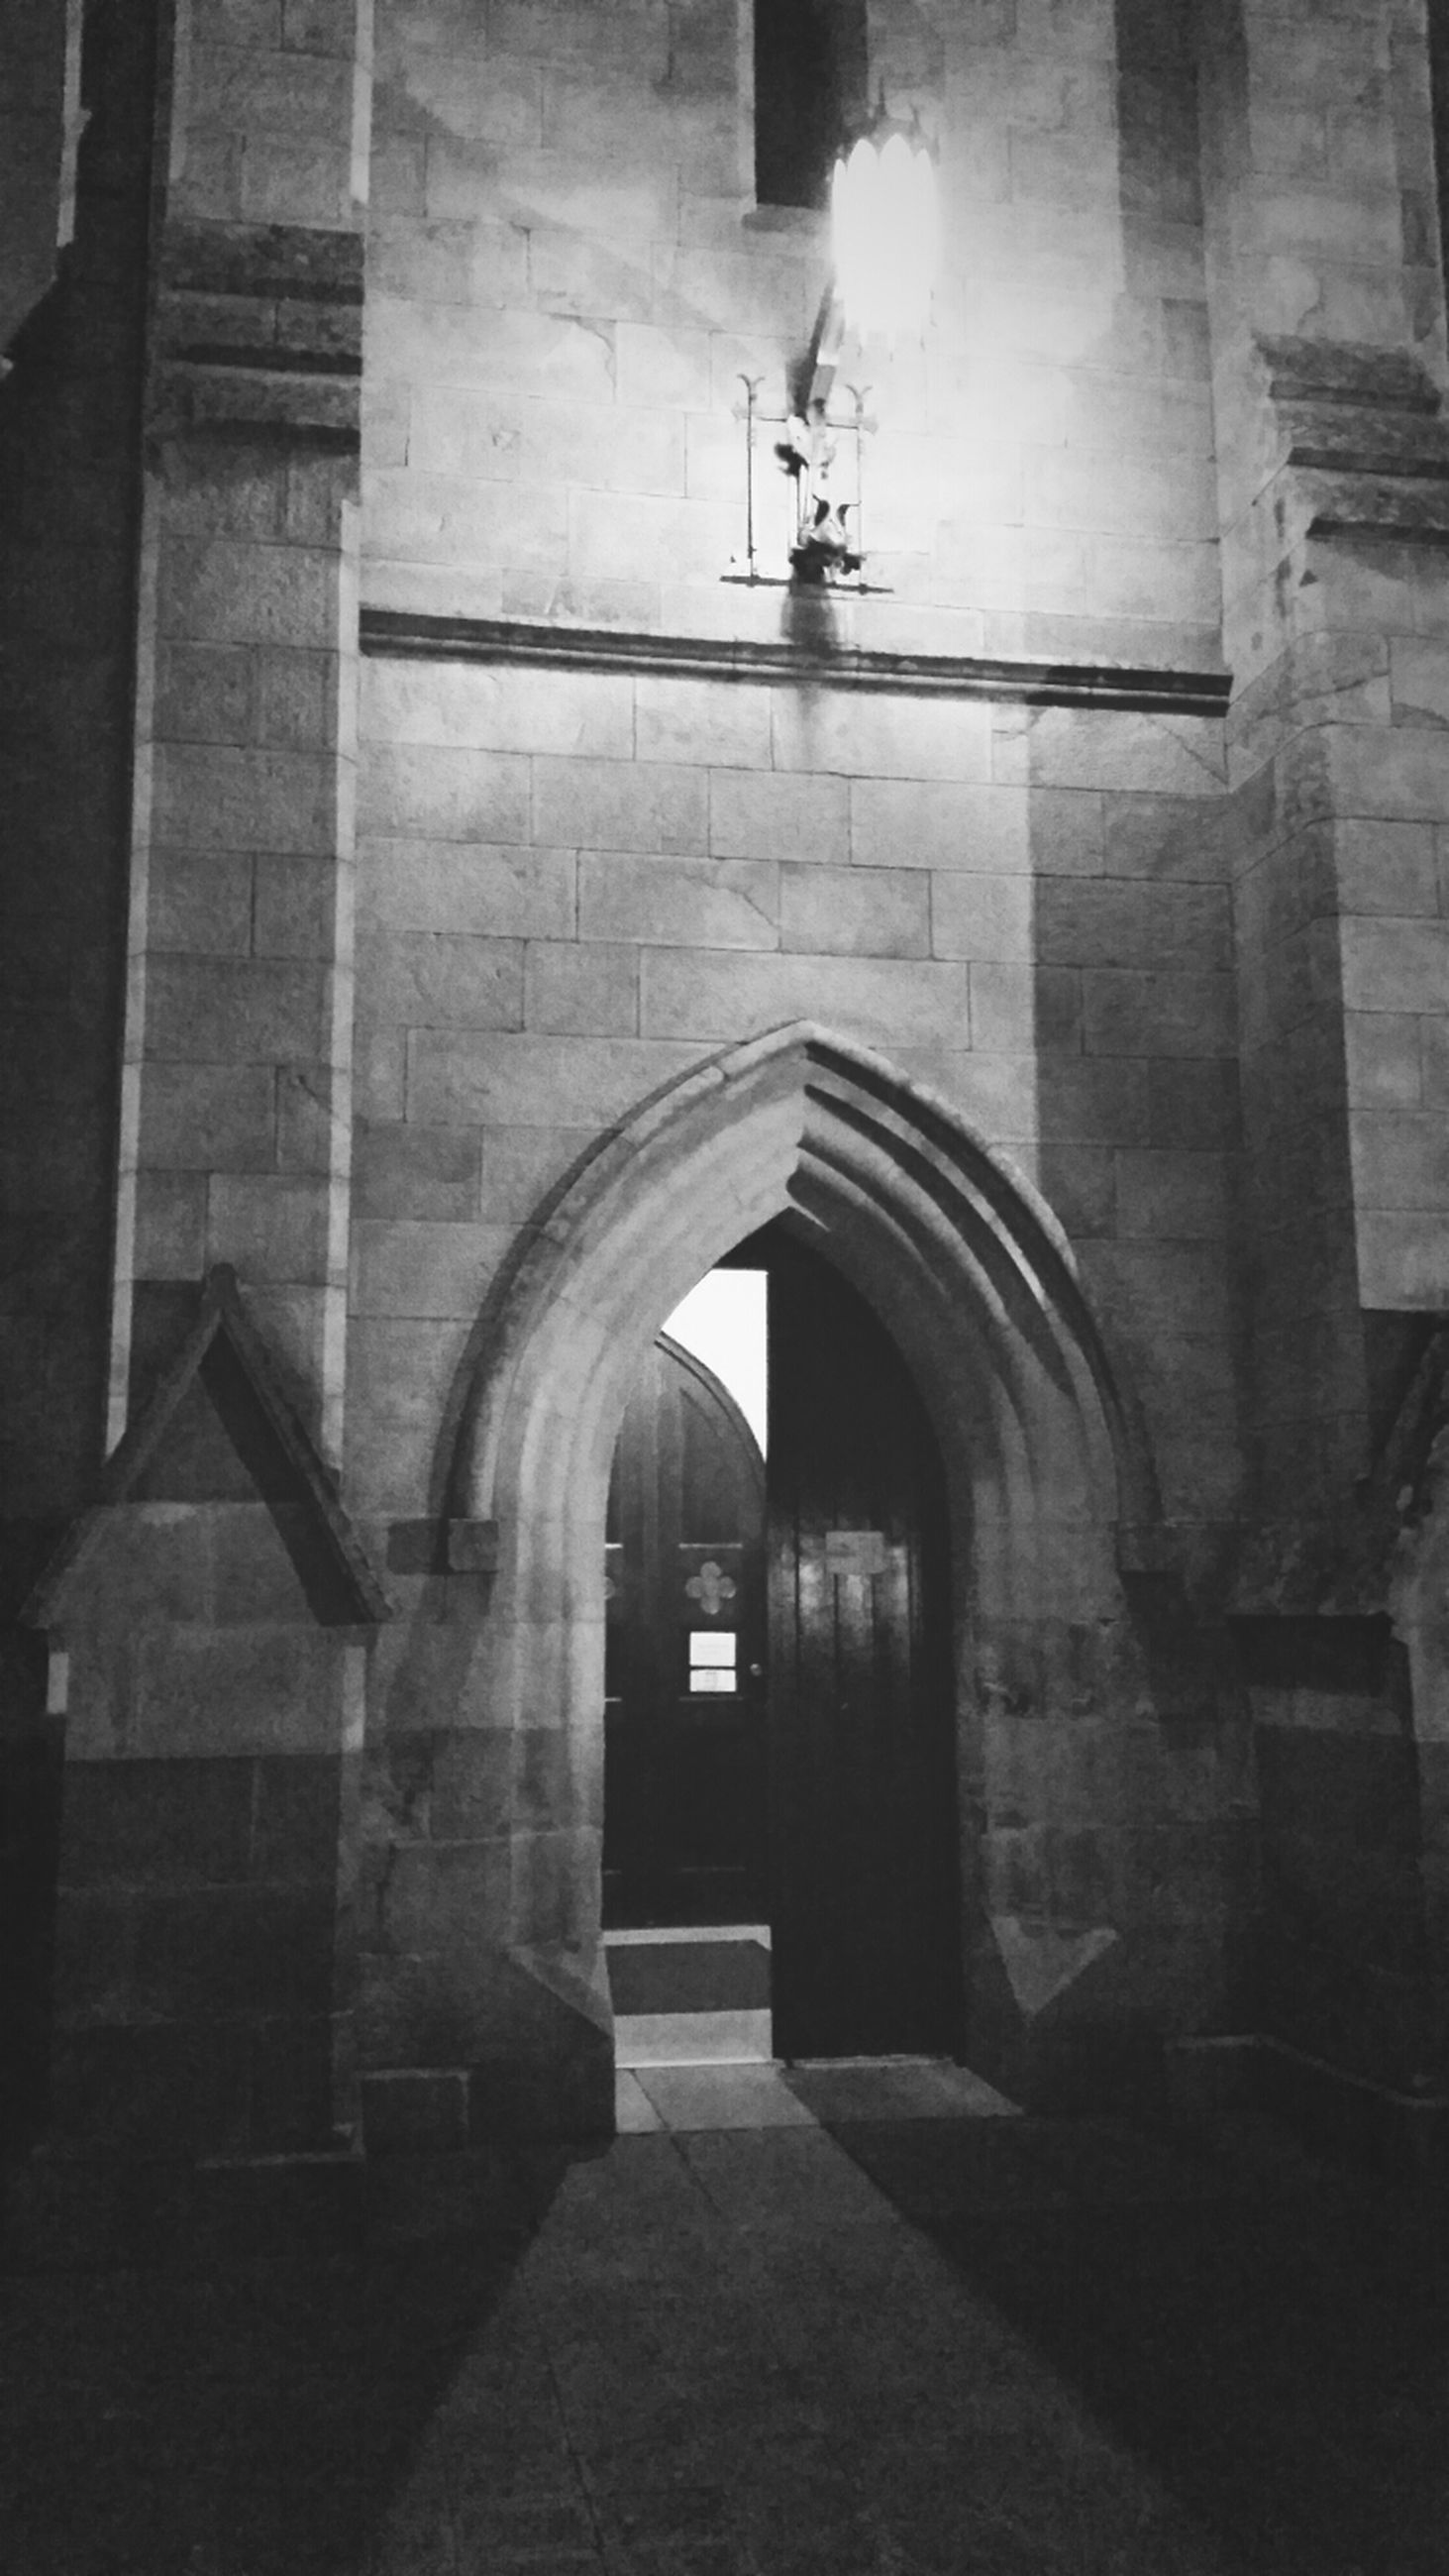 architecture, built structure, the way forward, arch, building exterior, indoors, building, illuminated, corridor, empty, lighting equipment, diminishing perspective, wall - building feature, narrow, no people, walkway, ceiling, archway, absence, entrance